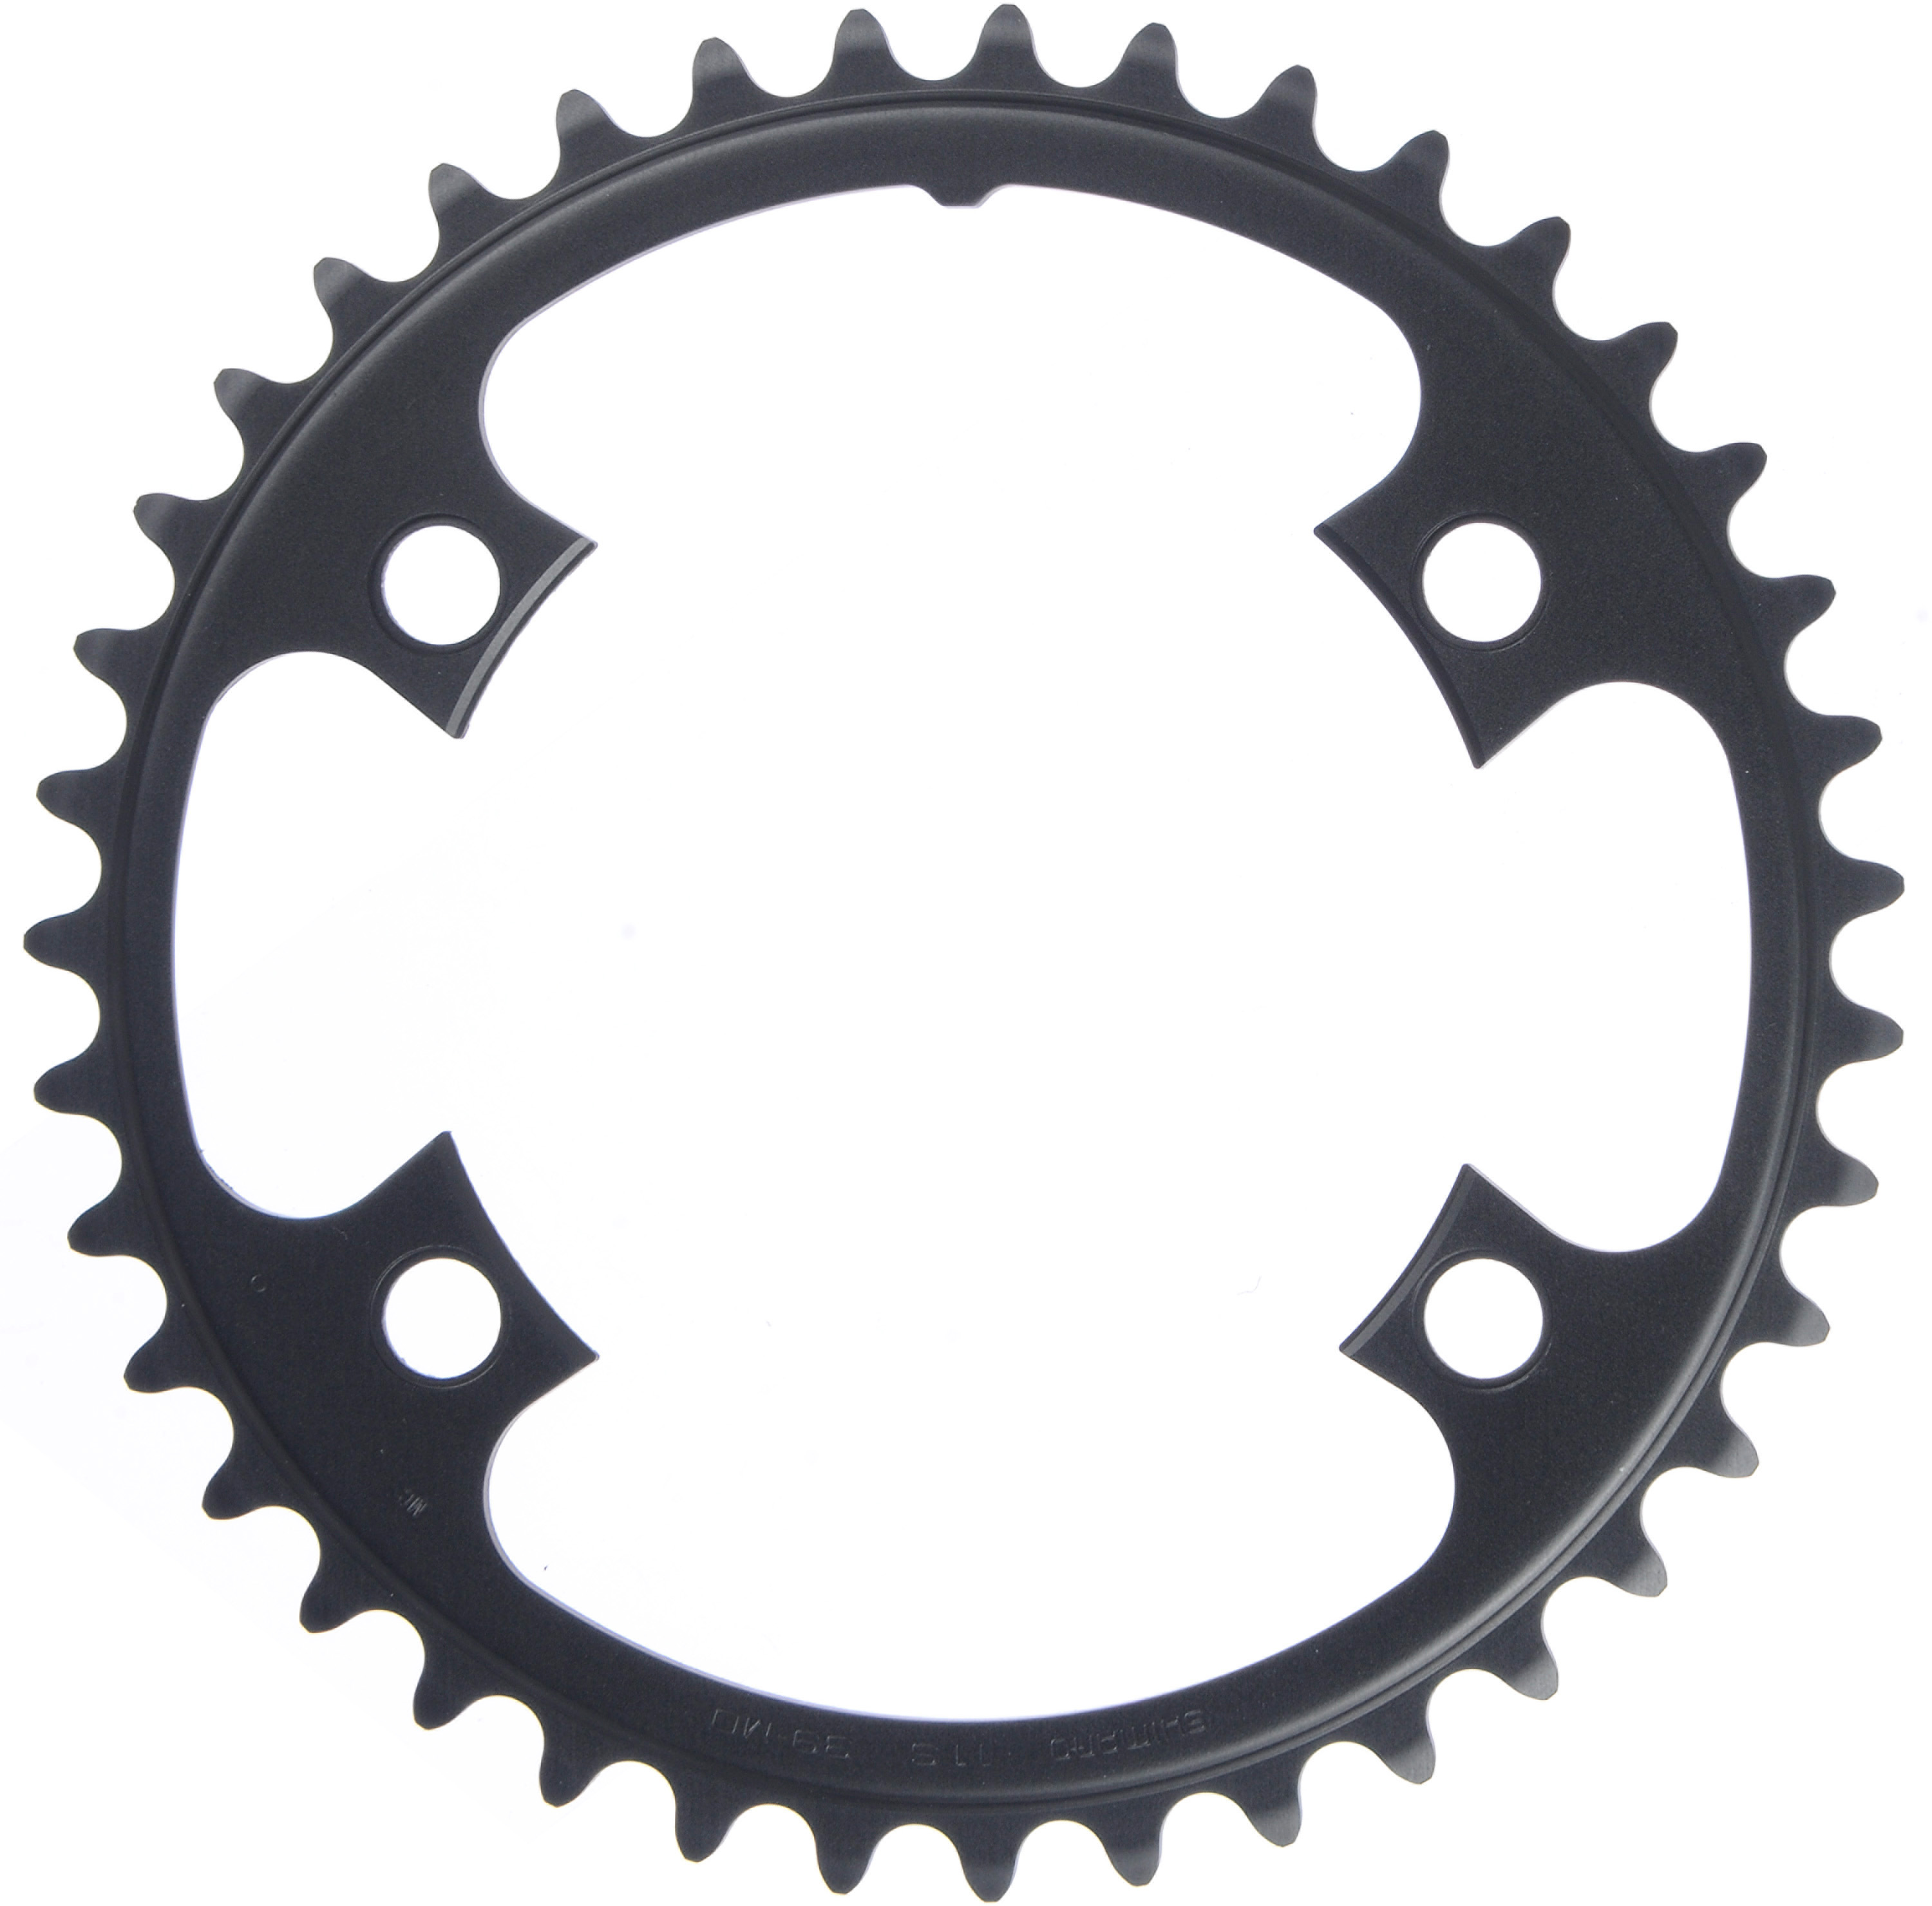 d669b5302ef Wiggle | Shimano Ultegra FC-6800 Inner Chainring | Chain Rings